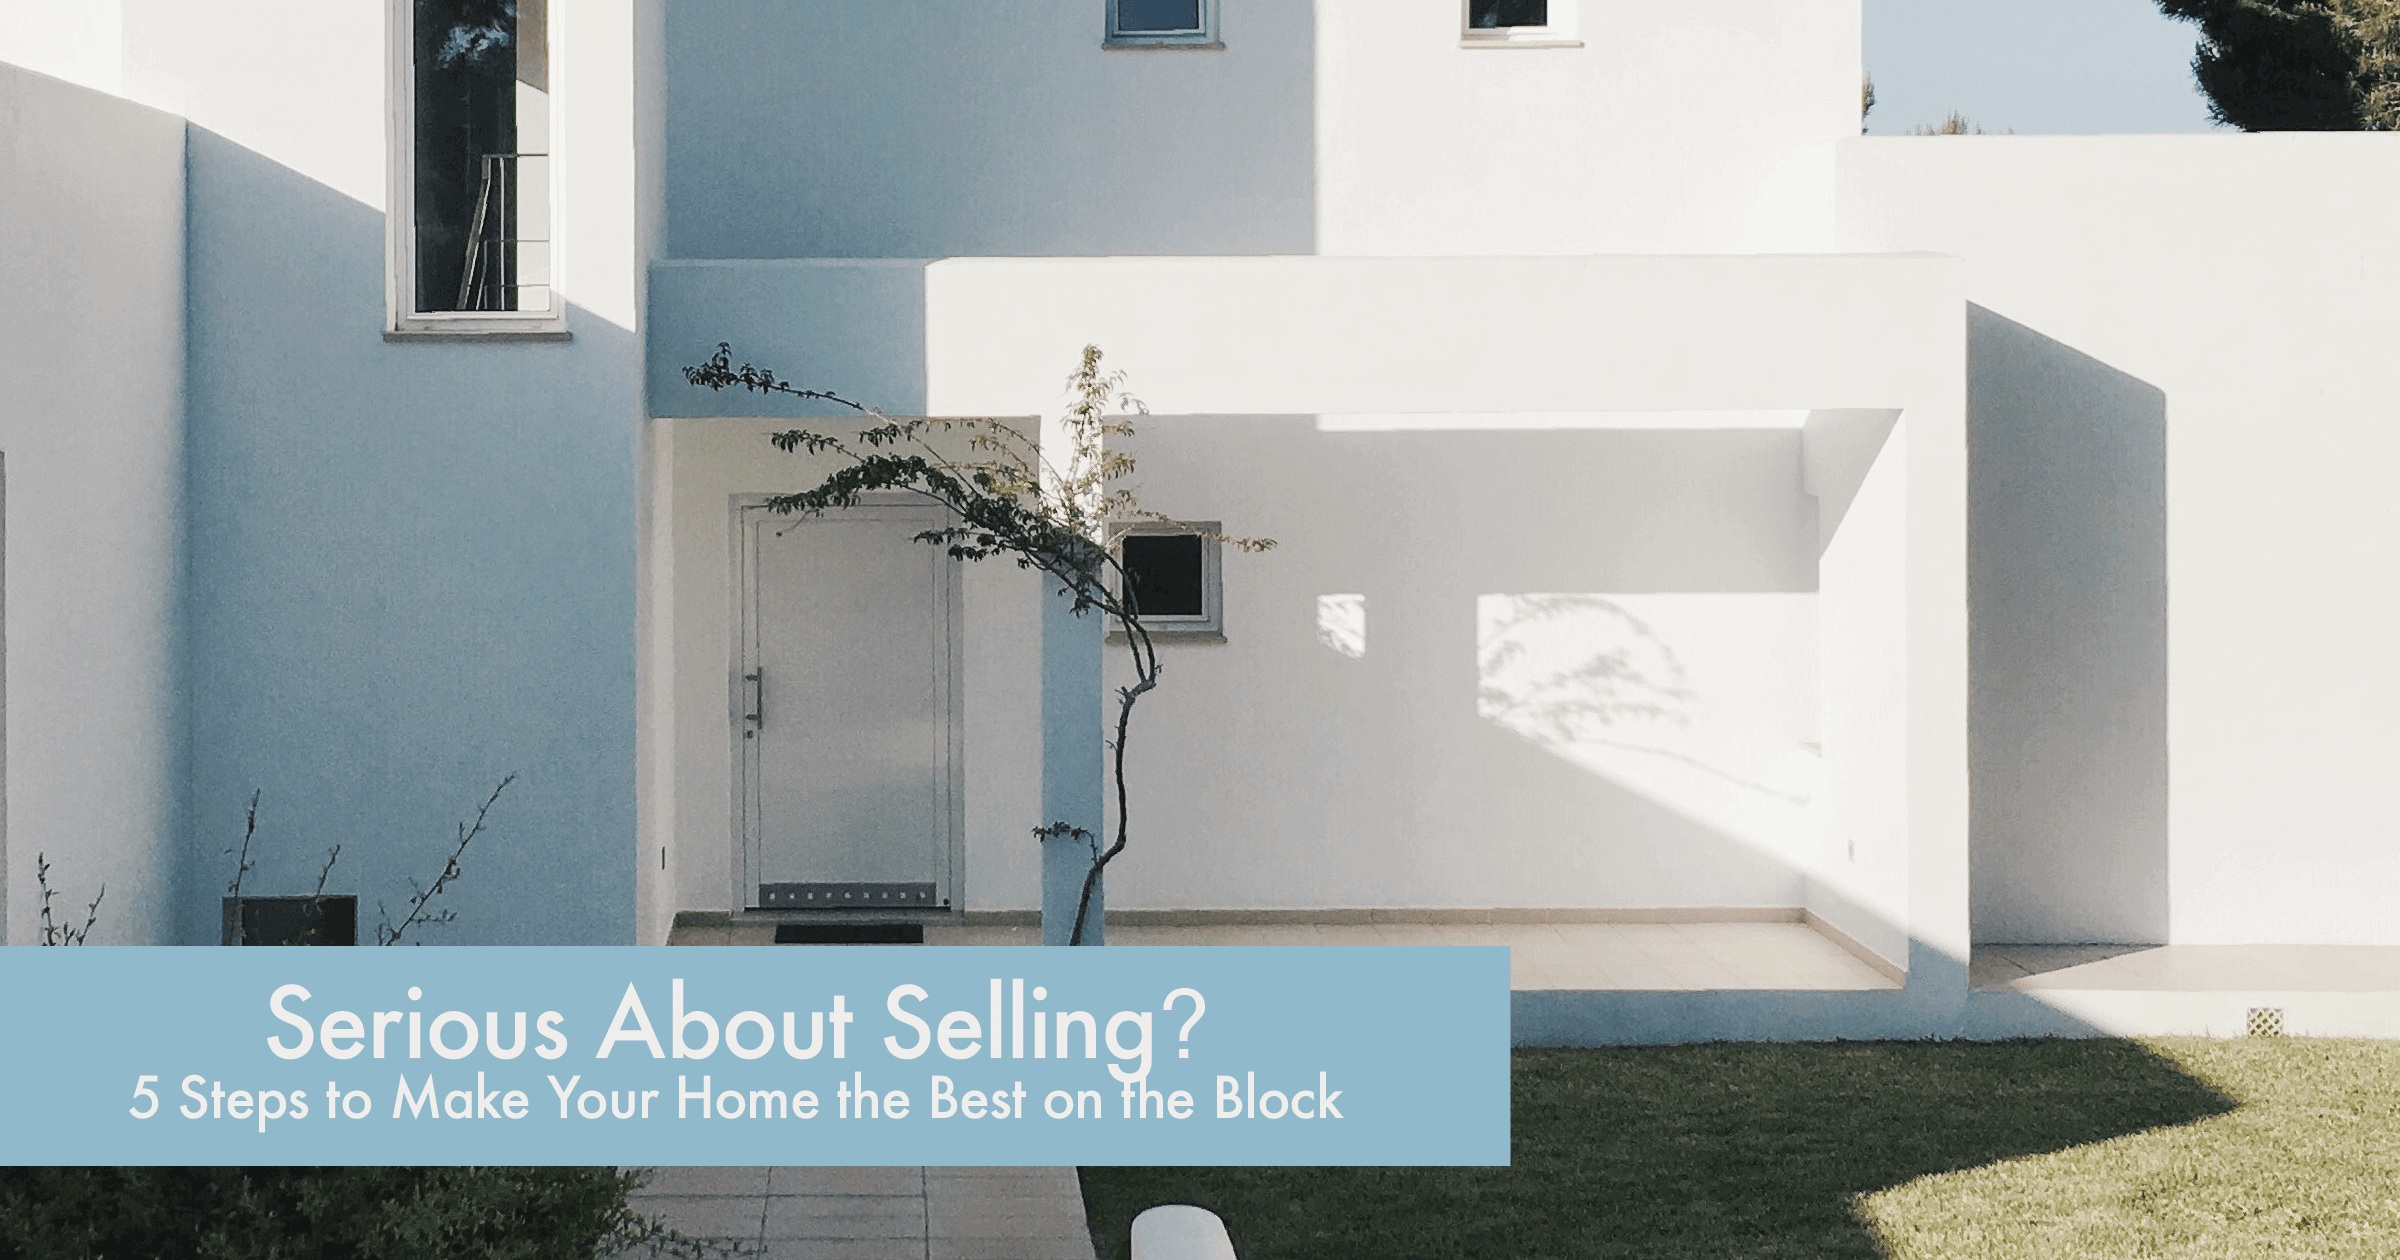 Serious+About+Selling+5+Steps+to+Make+Your+Home+the+Best+on+the+Block.jpg